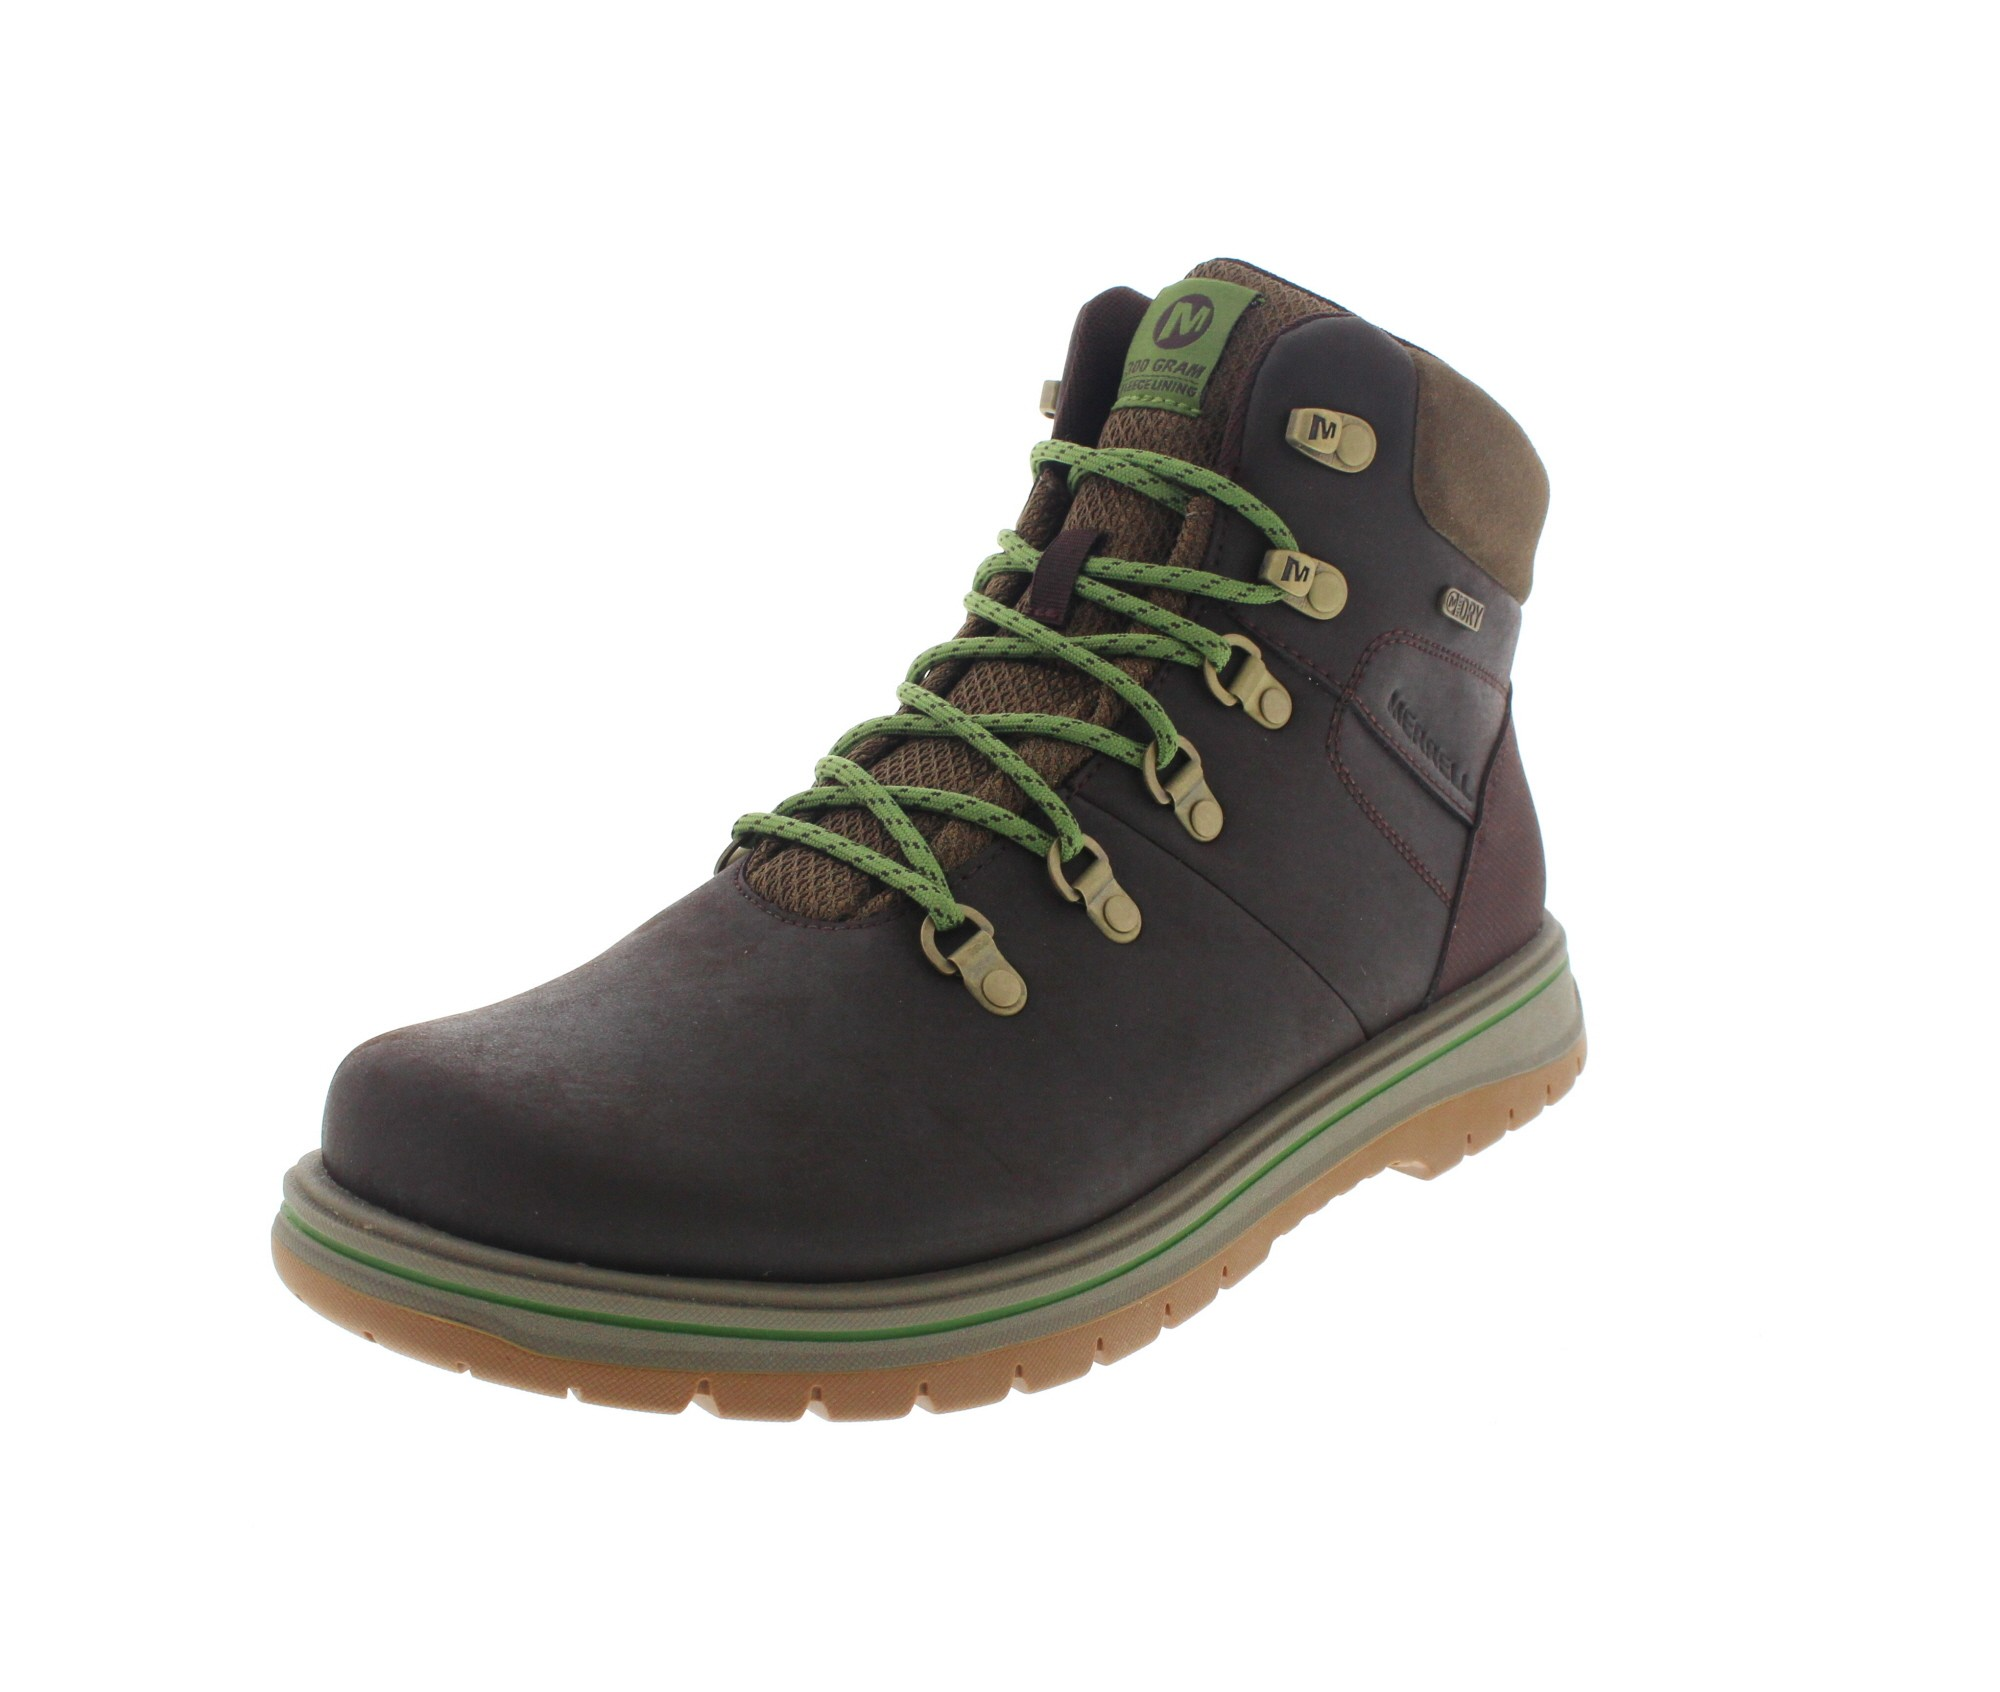 MERRELL - Stiefel BOUNDER MID THERMO WTPF - espresso-0